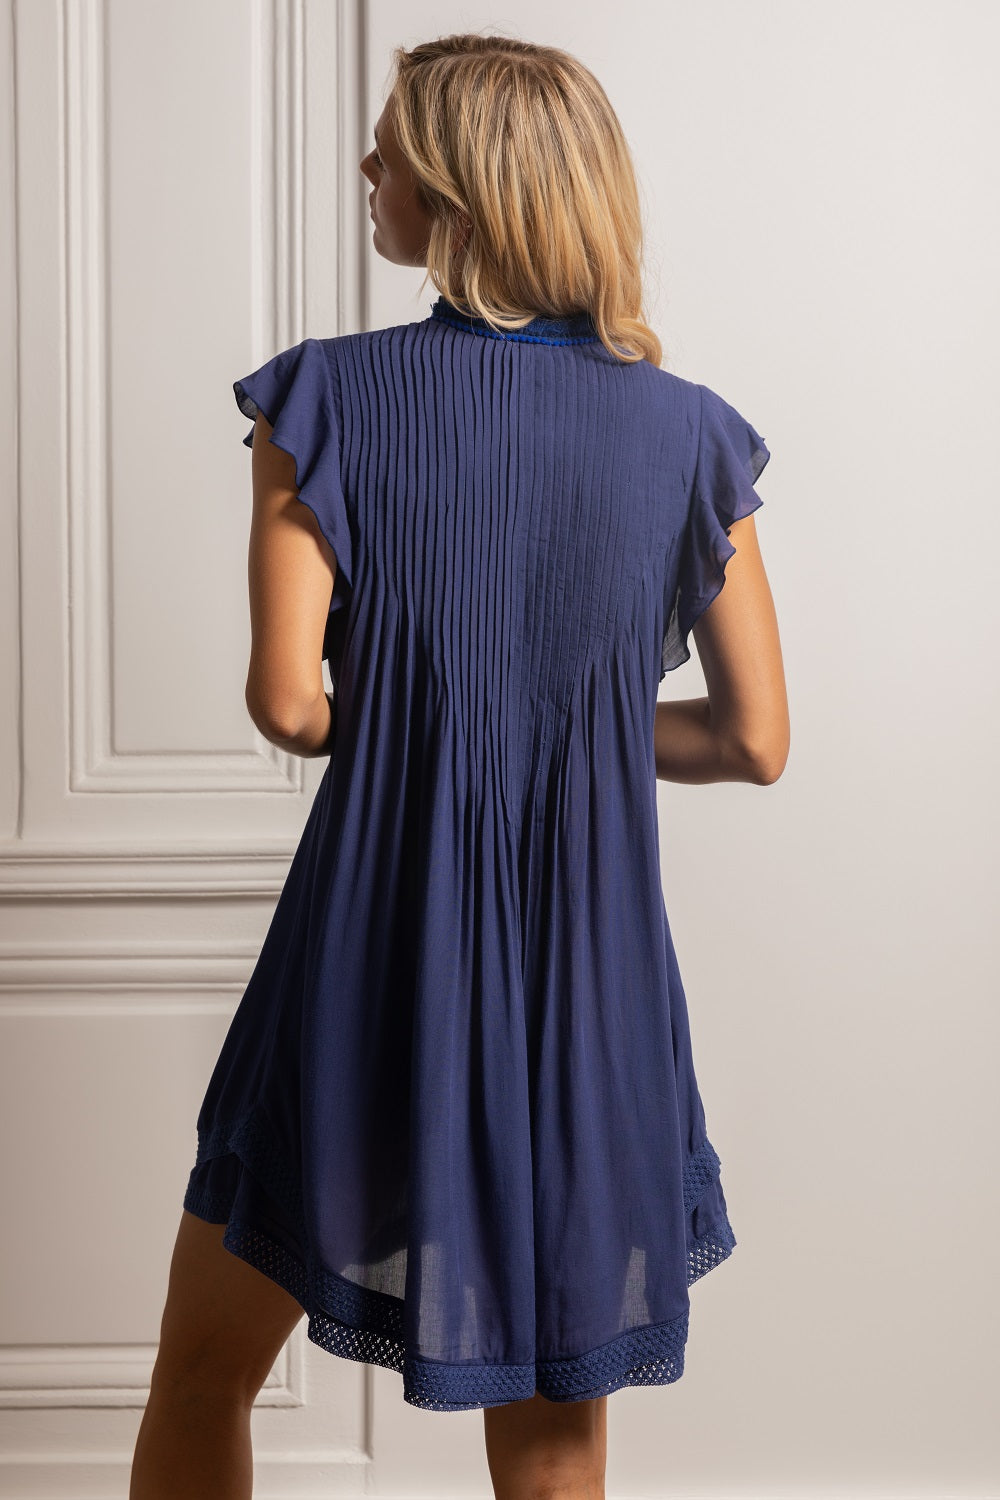 Mini Dress Sasha Lace Trimmed - Royal Blue